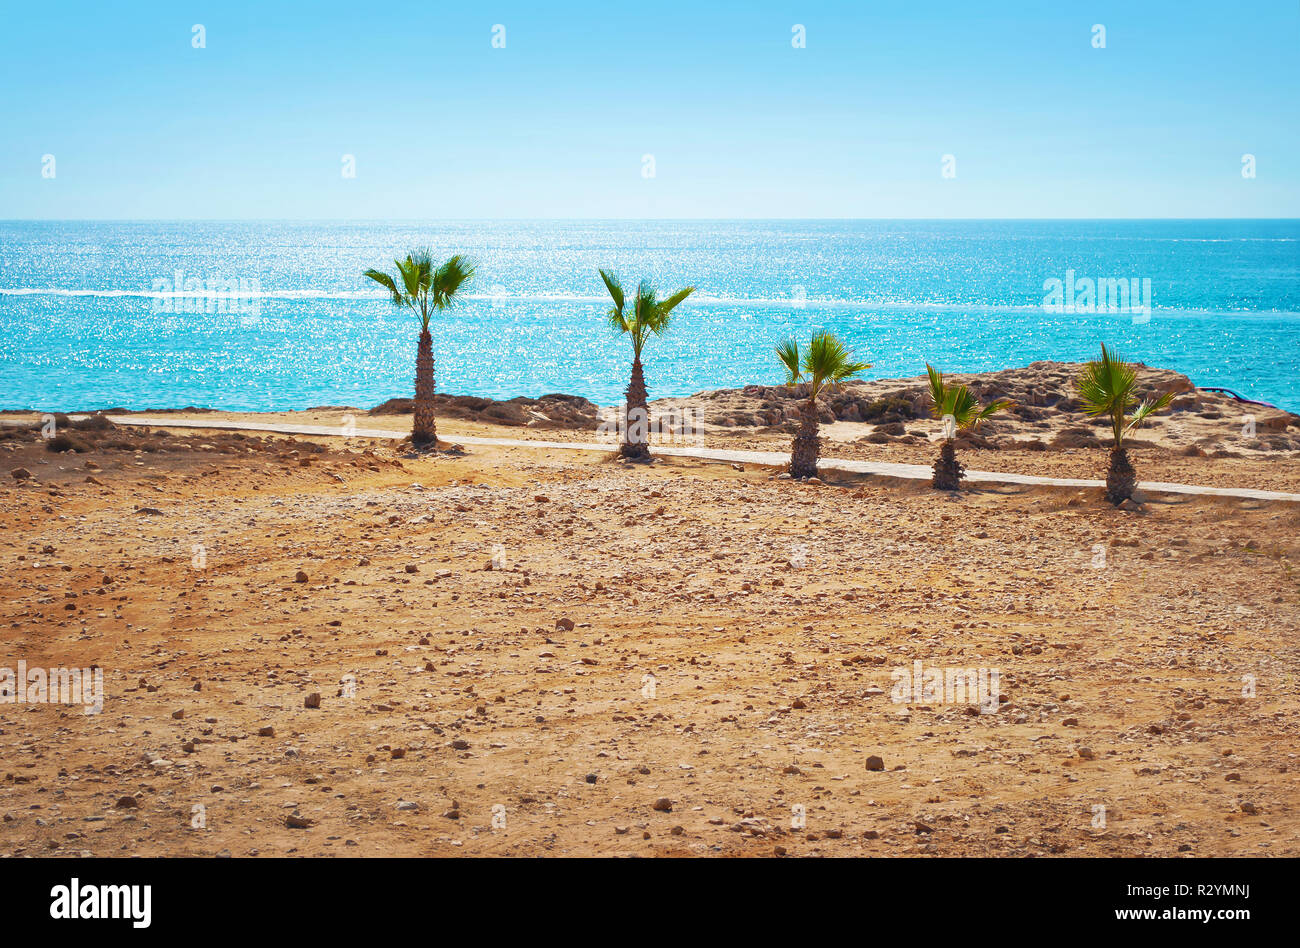 Image of five short palm trees on the barren beach on the background of sparkly blue sea surface and cloudless summer sky. - Stock Image